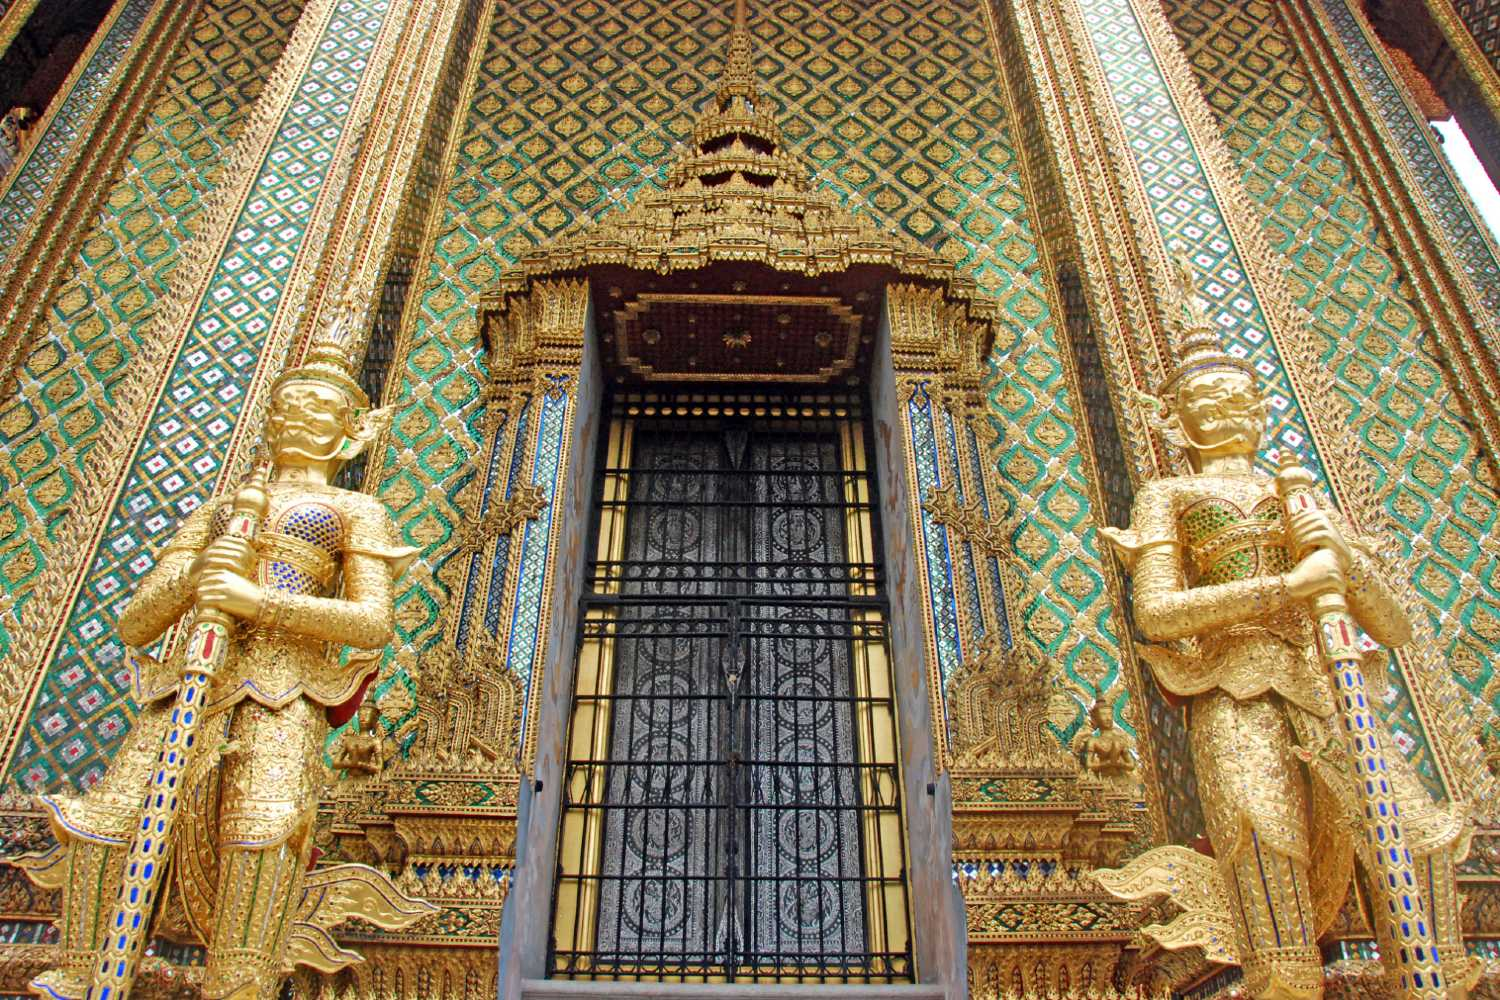 Phra Mondop on the grounds of the Grand Palace in Bangkok, Thailand